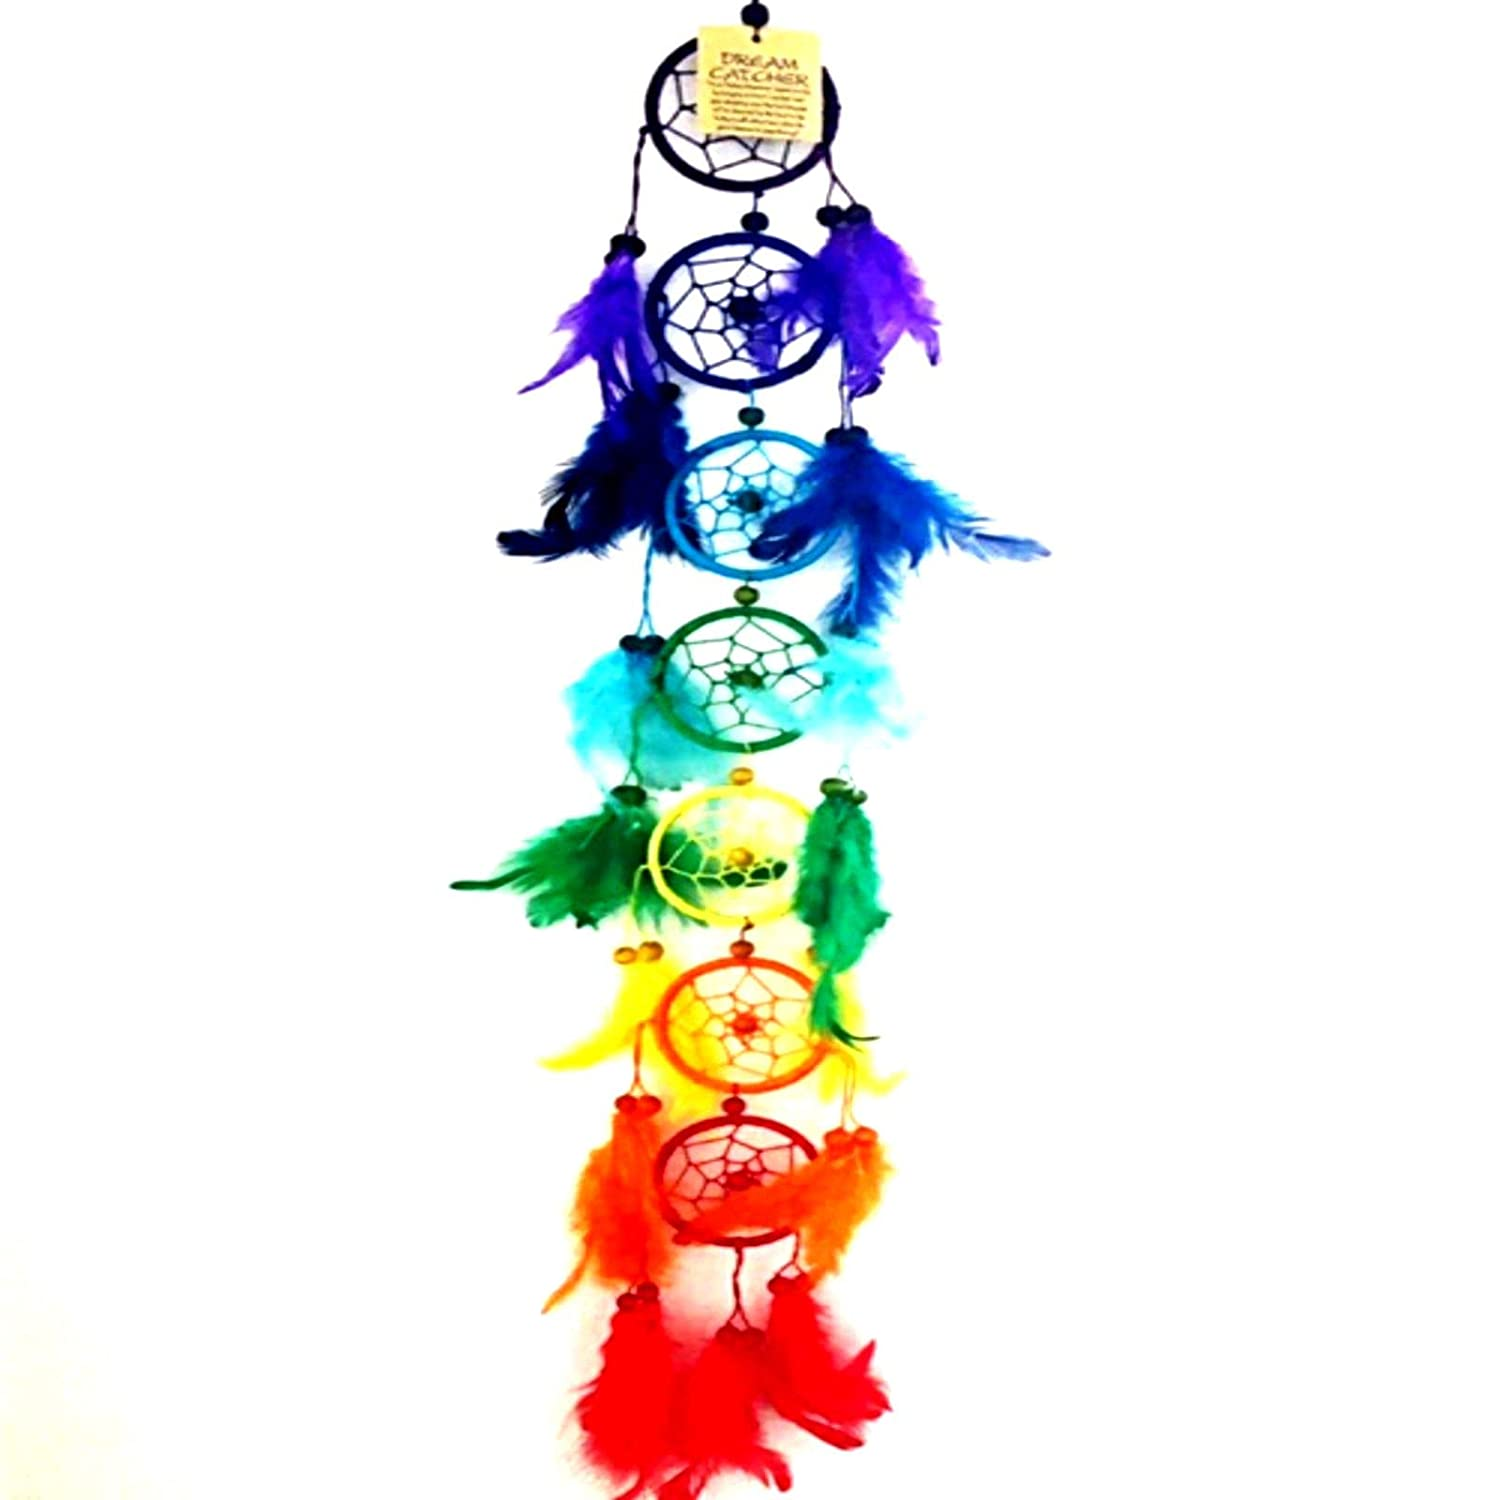 Big Long Large 7 Chakras Dreamcatchers Rainbow Multi Coloured Round Beaded Dream Catchers Beautiful Home Decor & Kids Room Wall Hanging Gift Party Bag Filler Idea Catch All Those Bad Dreams No More Sleepless Nights TPGSUK